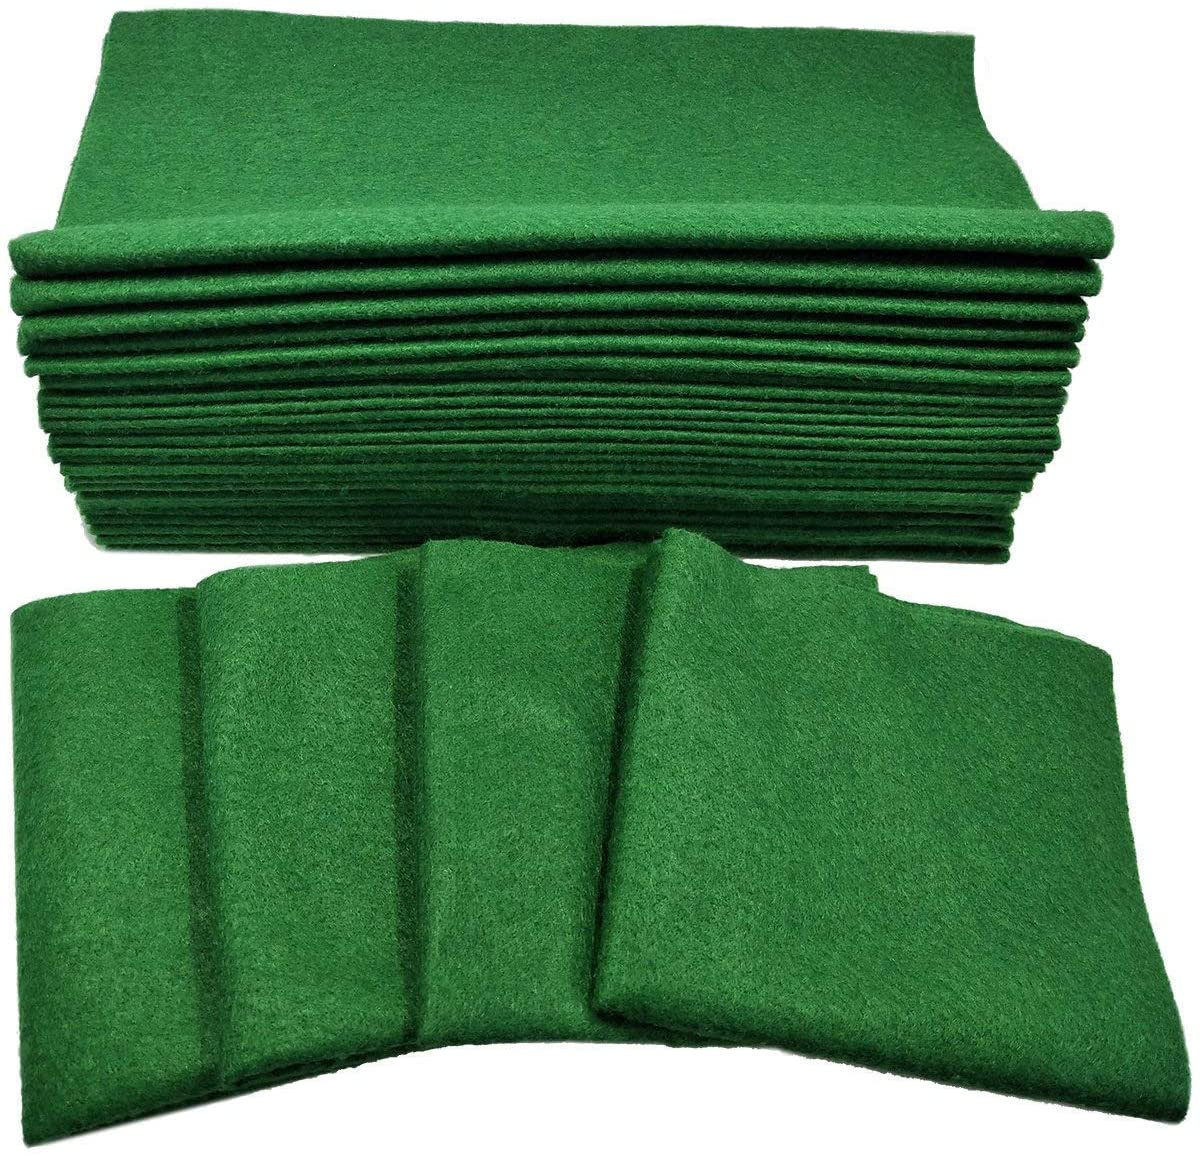 Misscrafts 30pcs 12 X 12 Inches 1.4mm Kelly Green Christmas Felt Squares Soft Christmas Felt Sheets Christmas Felt Arts and Crafts Felt Fat Quarters DIY Sewing Nonwoven Patchwork Wool Blended Felt